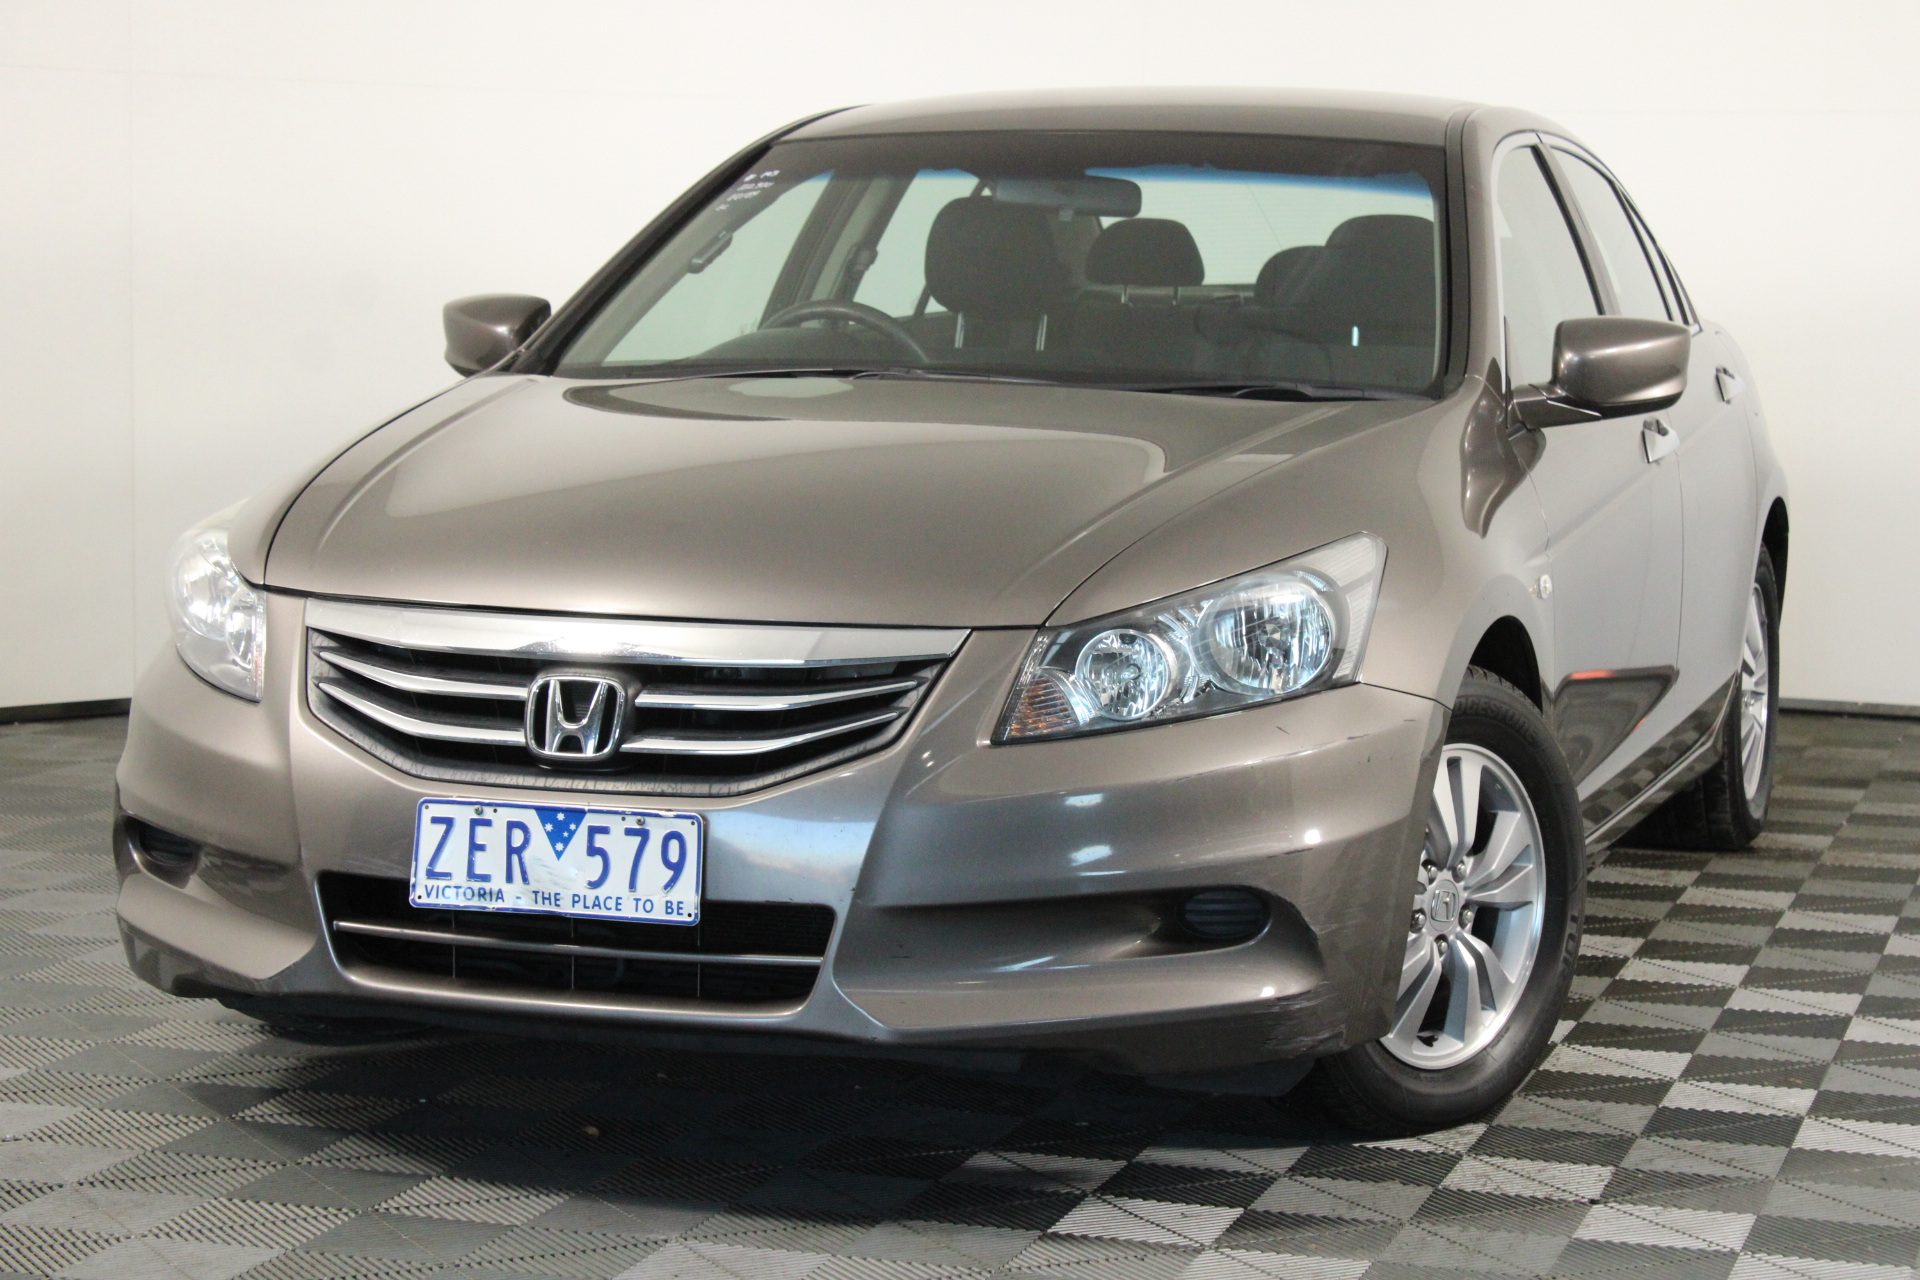 2012 Honda Accord VTI 8TH GEN Automatic Sedan